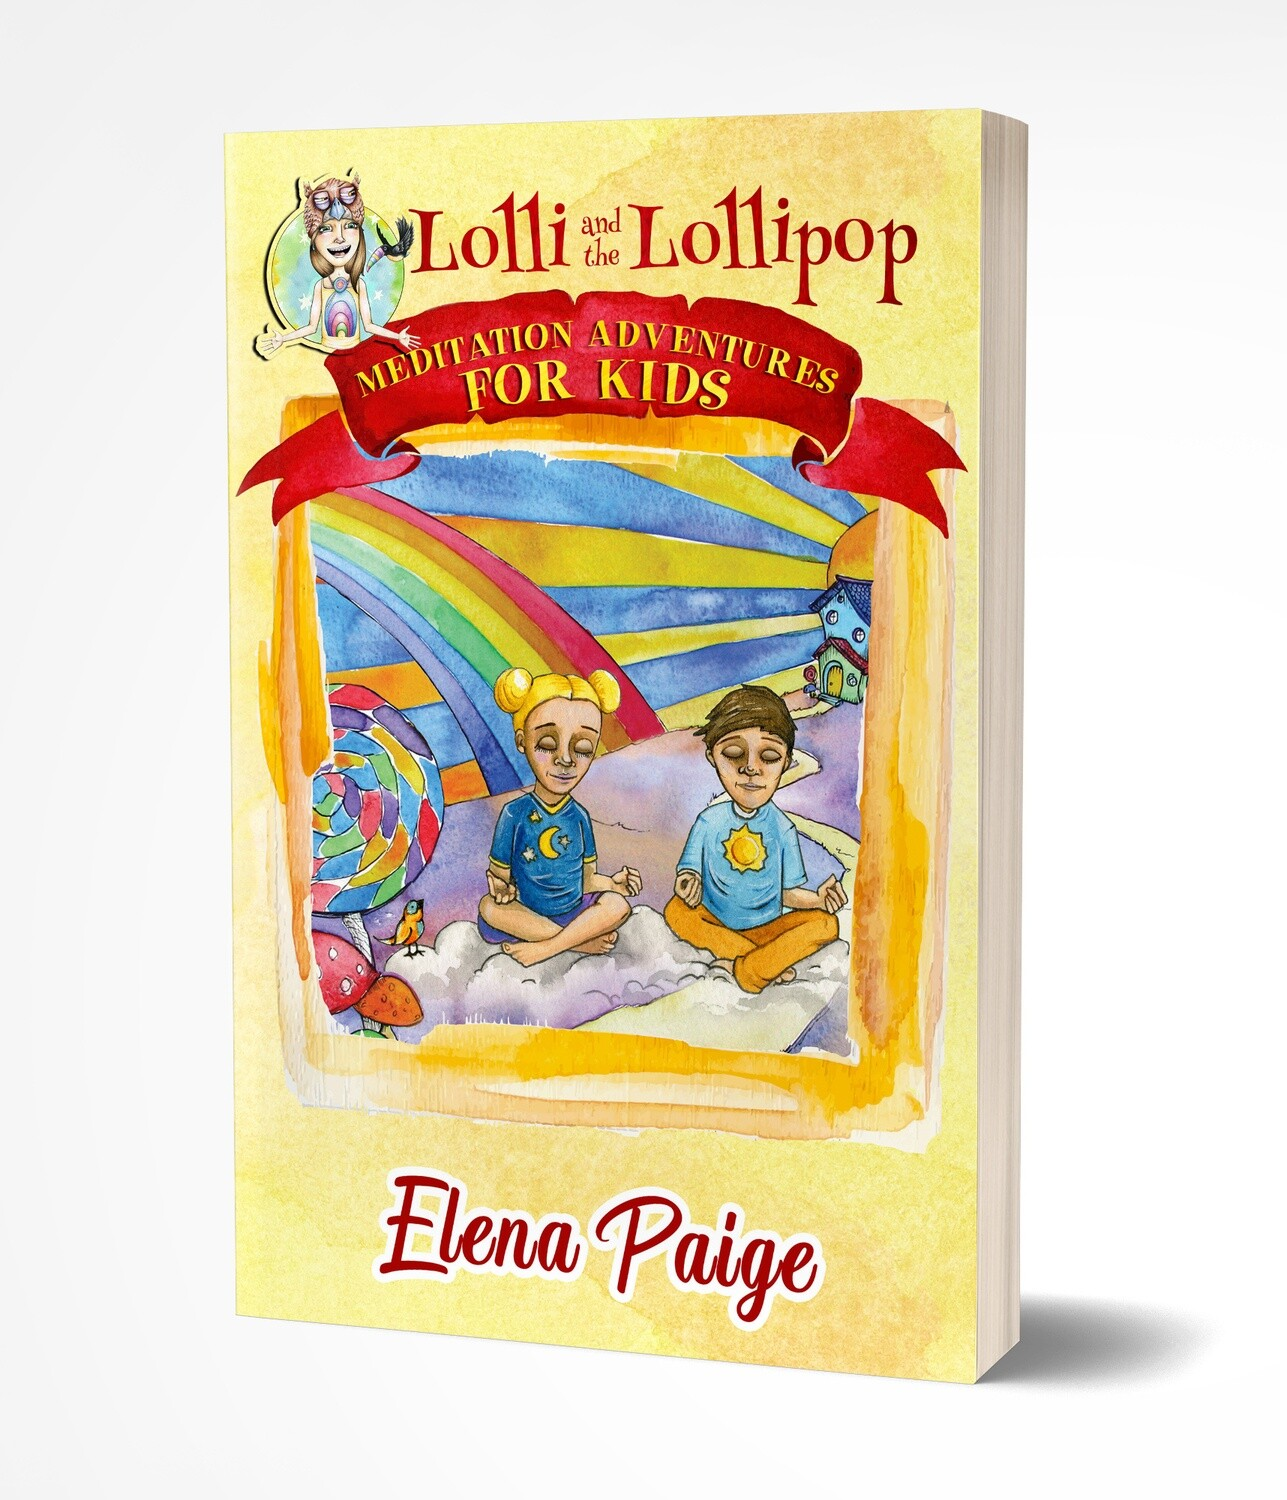 Lolli and the Lollipop (Meditation Adventures for Kids book 1) - Paperback Edition